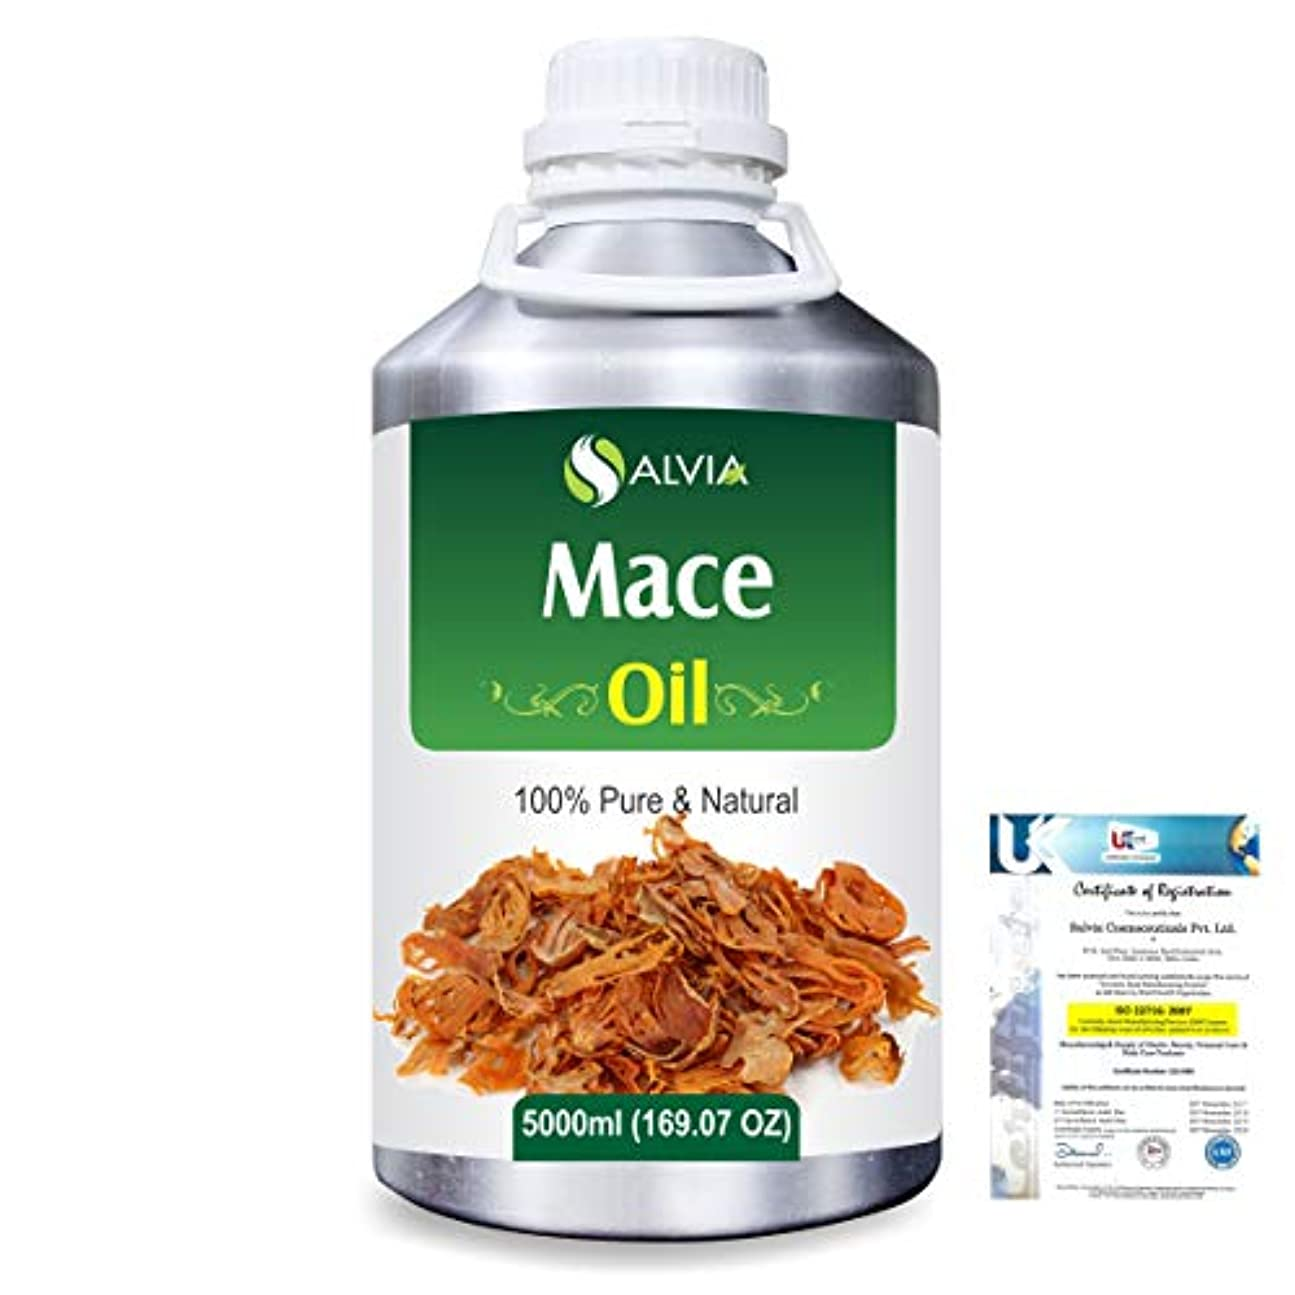 くびれたシャープフレアMace (Myristica fragrans) 100% Natural Pure Essential Oil 5000ml/169fl.oz.